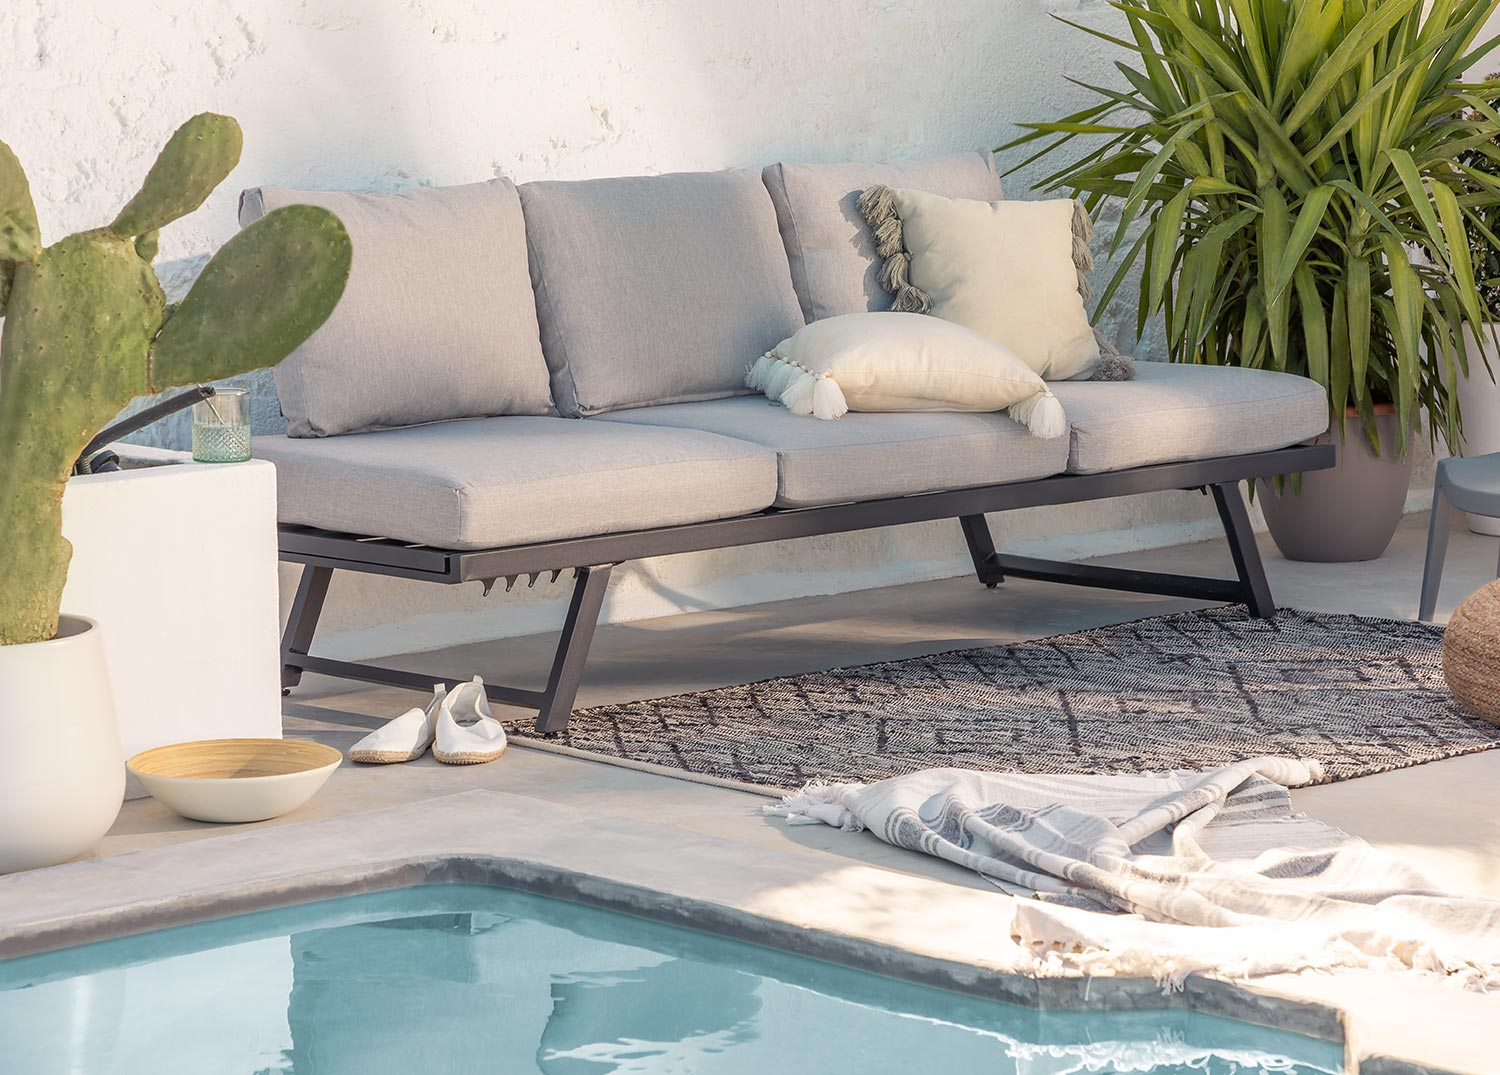 Outdoor Reclinable Sofa Libanc, gallery image 1